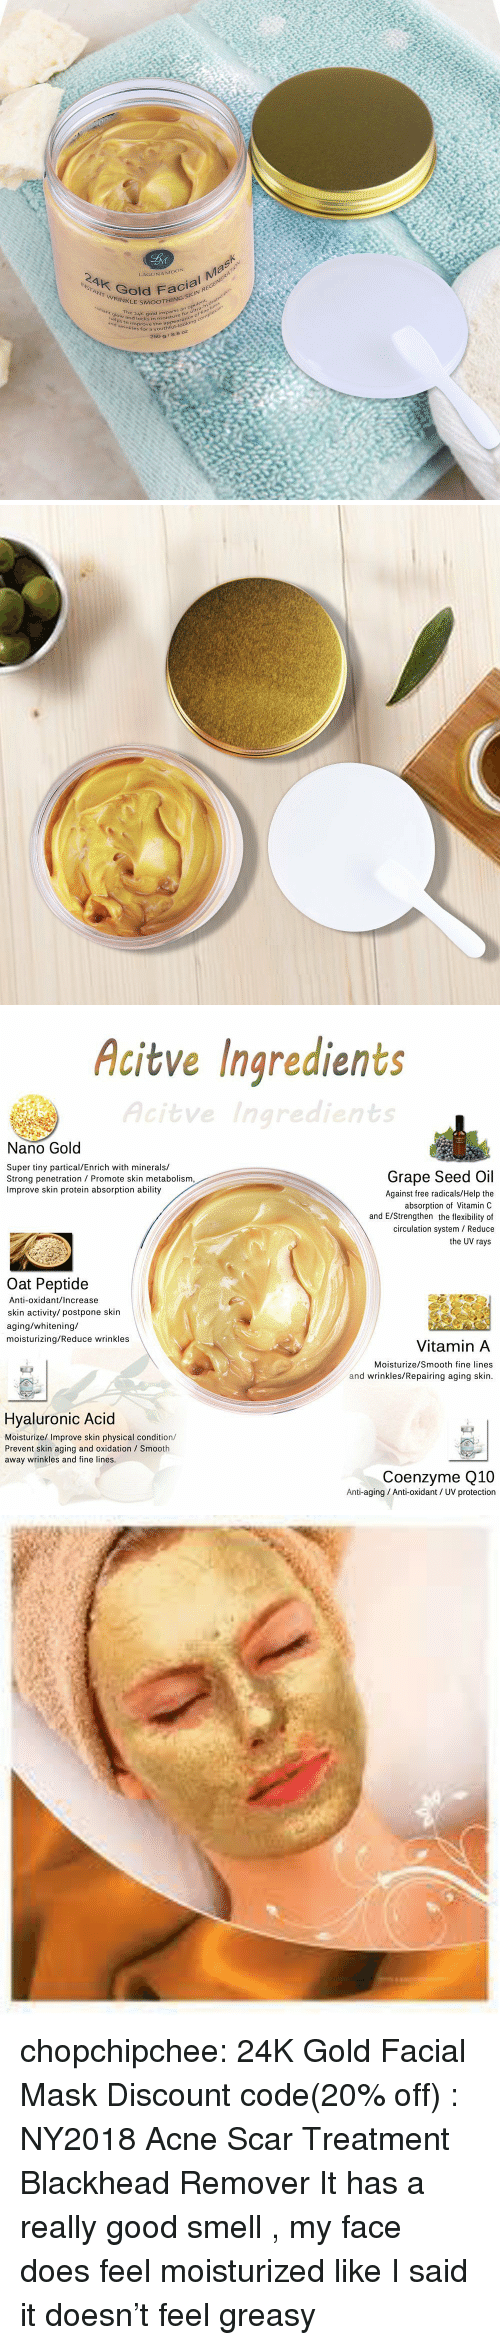 oat: 2AK GO  LAGUNA  MOON  Gotd  RINKLE SMOOTHIN  Facial Ma  radinnt glow  ie  arts e  e 24K goldm  and locks in moistureance of  wrio improve the appeoking  a youthful-look  250 g 8.8 oz  sthe sture for ultra-hydr   Acitve Ingredients  Acitve  Nano Gold  Super tiny partical/Enrich with minerals/  Strong penetration Promote skin metabolism  Improve skin protein absorption ability  Grape Seed Oil  Against free radicals/Help the  absorption of Vitamin C  and E/Strengthen the flexibility of  circulation system / Reduce  the UV rays  Oat Peptide  Anti-oxidant/Increase  skin activity/ postpone skin  aging/whitening/  moisturizing/Reduce wrinkles  Vitamin A  Moisturize/Smooth fine lines  and wrinkles/Repairing aging skin  Hvaluronic Aci  Moisturize/ Improve skin physical condition/  Prevent skin aging and oxidation Smooth  away wrinkles and fine lines  Coenzyme Q10  Anti-aging Anti-oxidant / UV protection chopchipchee:  24K Gold Facial Mask  Discount code(20% off) : NY2018 Acne Scar Treatment  Blackhead Remover   It has a really good smell , my face does feel moisturized like I said it doesn't feel greasy